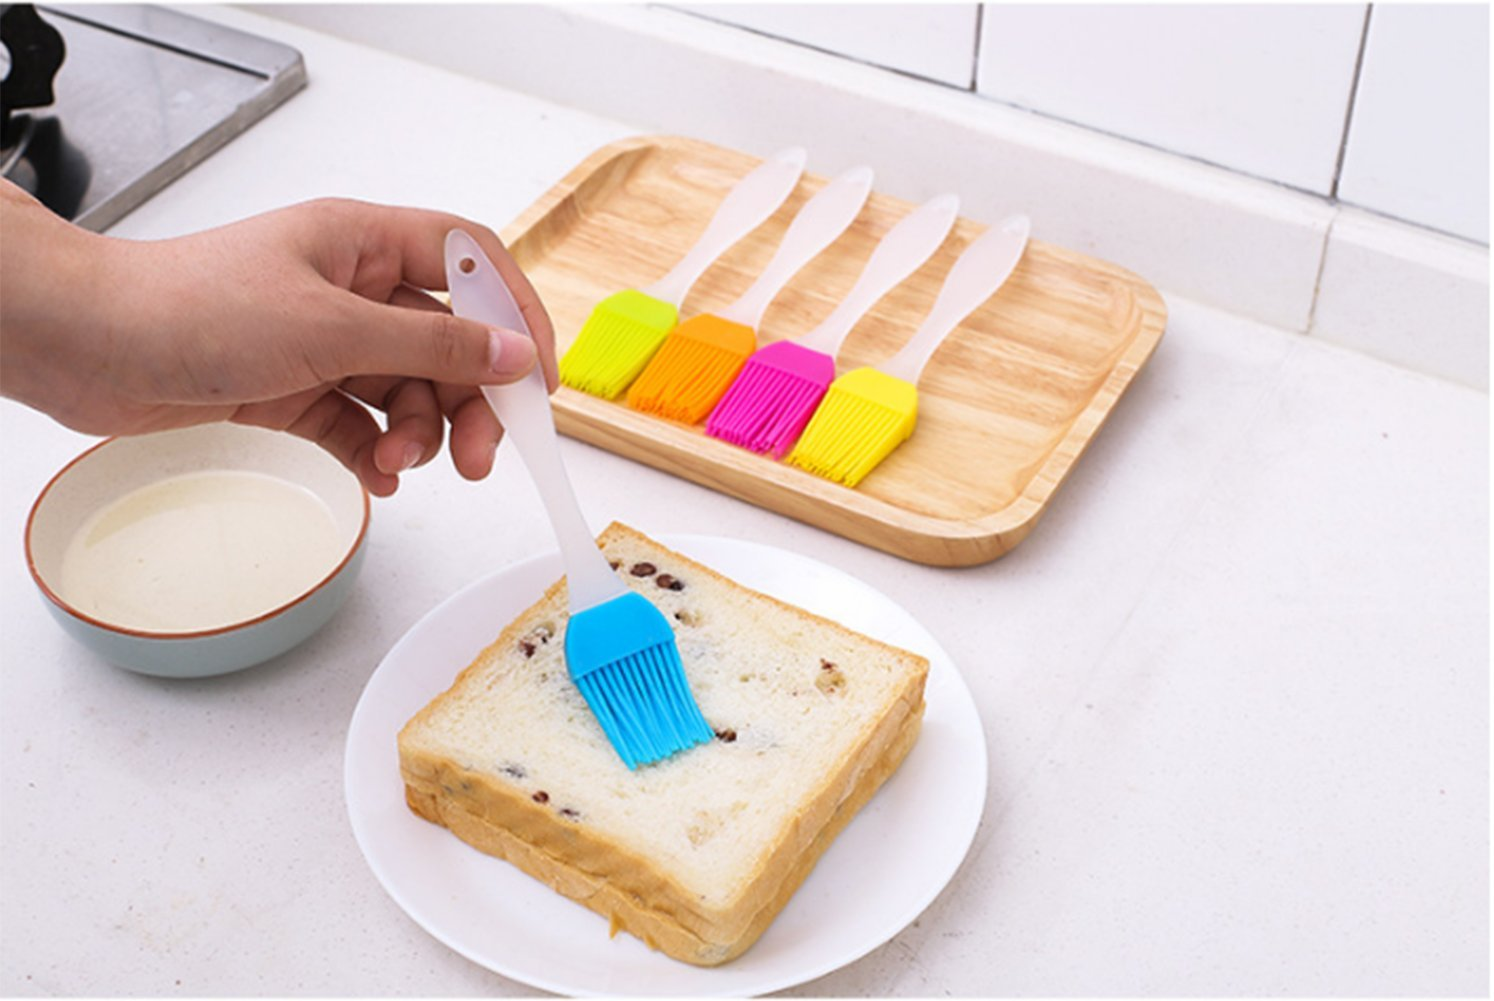 FDIO 5 Pcs Silicone Pastry/Basting/Oil Brush,Kitchen Gadgets for BBQ,Meat,Grilling,Cakes,(Multicolor) 4 MATERIAL: The oil brush head is made of food-grade silicone, which can withstand high temperature. The handle is environment-friendly PP which is non-toxic and durable FIVE COLOR TO CREATE FOOD: Including multiple colour 5 silicone brushes in one set, vibrant colors, avoid flavor crossing by using one color for different seasoning LIGHTWEIGHT DESIGN: The lightweight handle provides a soft comfortable firm grip making basting easy, quick and effortless coating action, can be used in many applications